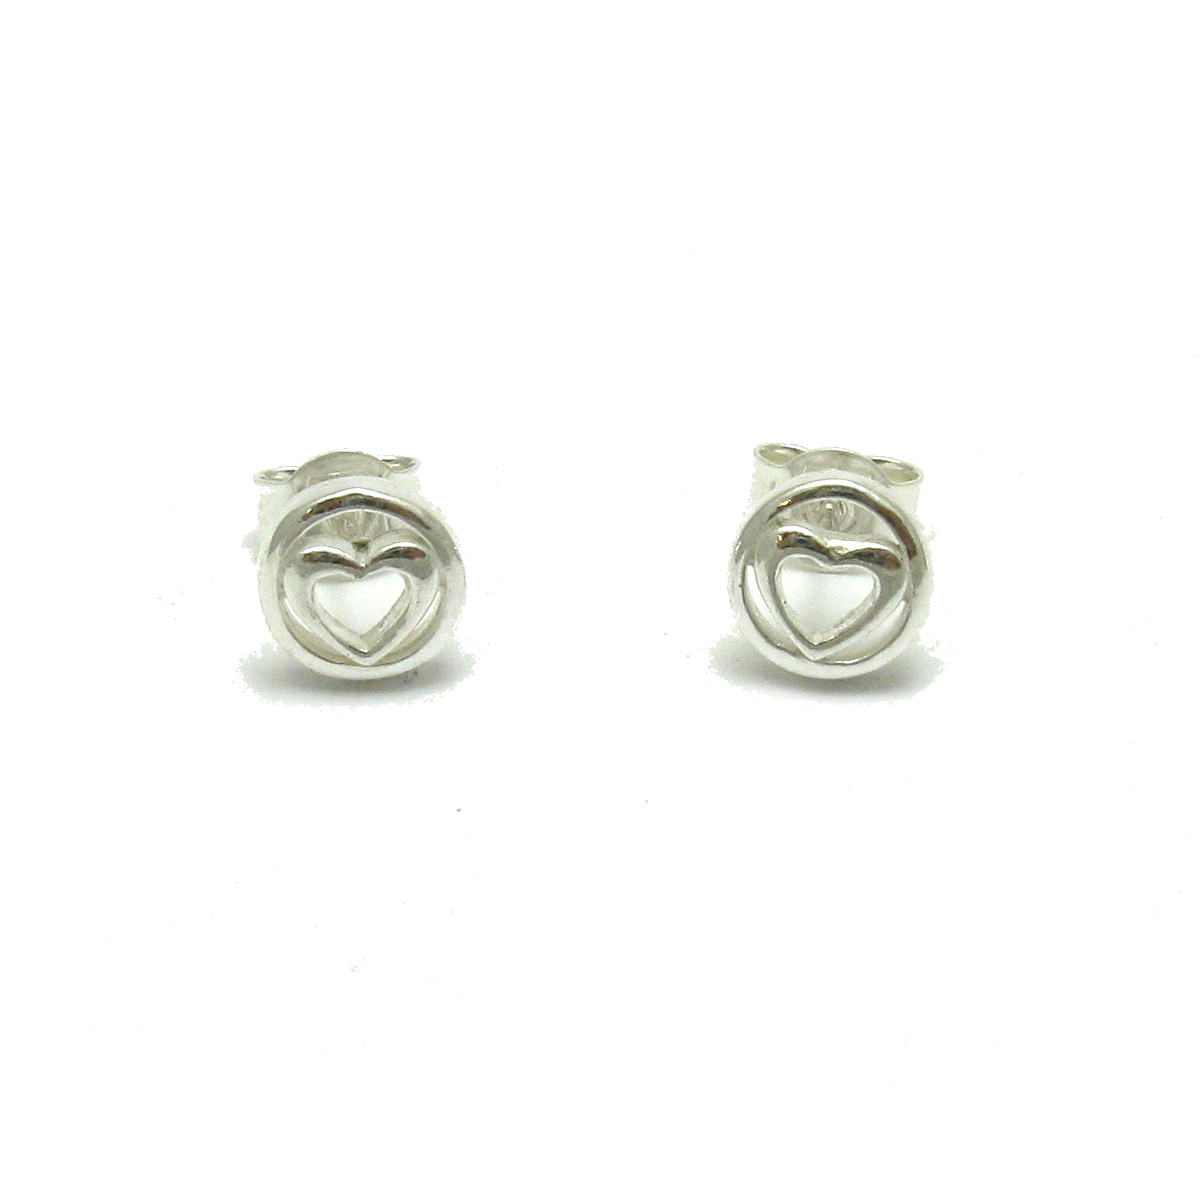 Silver earrings - E000642